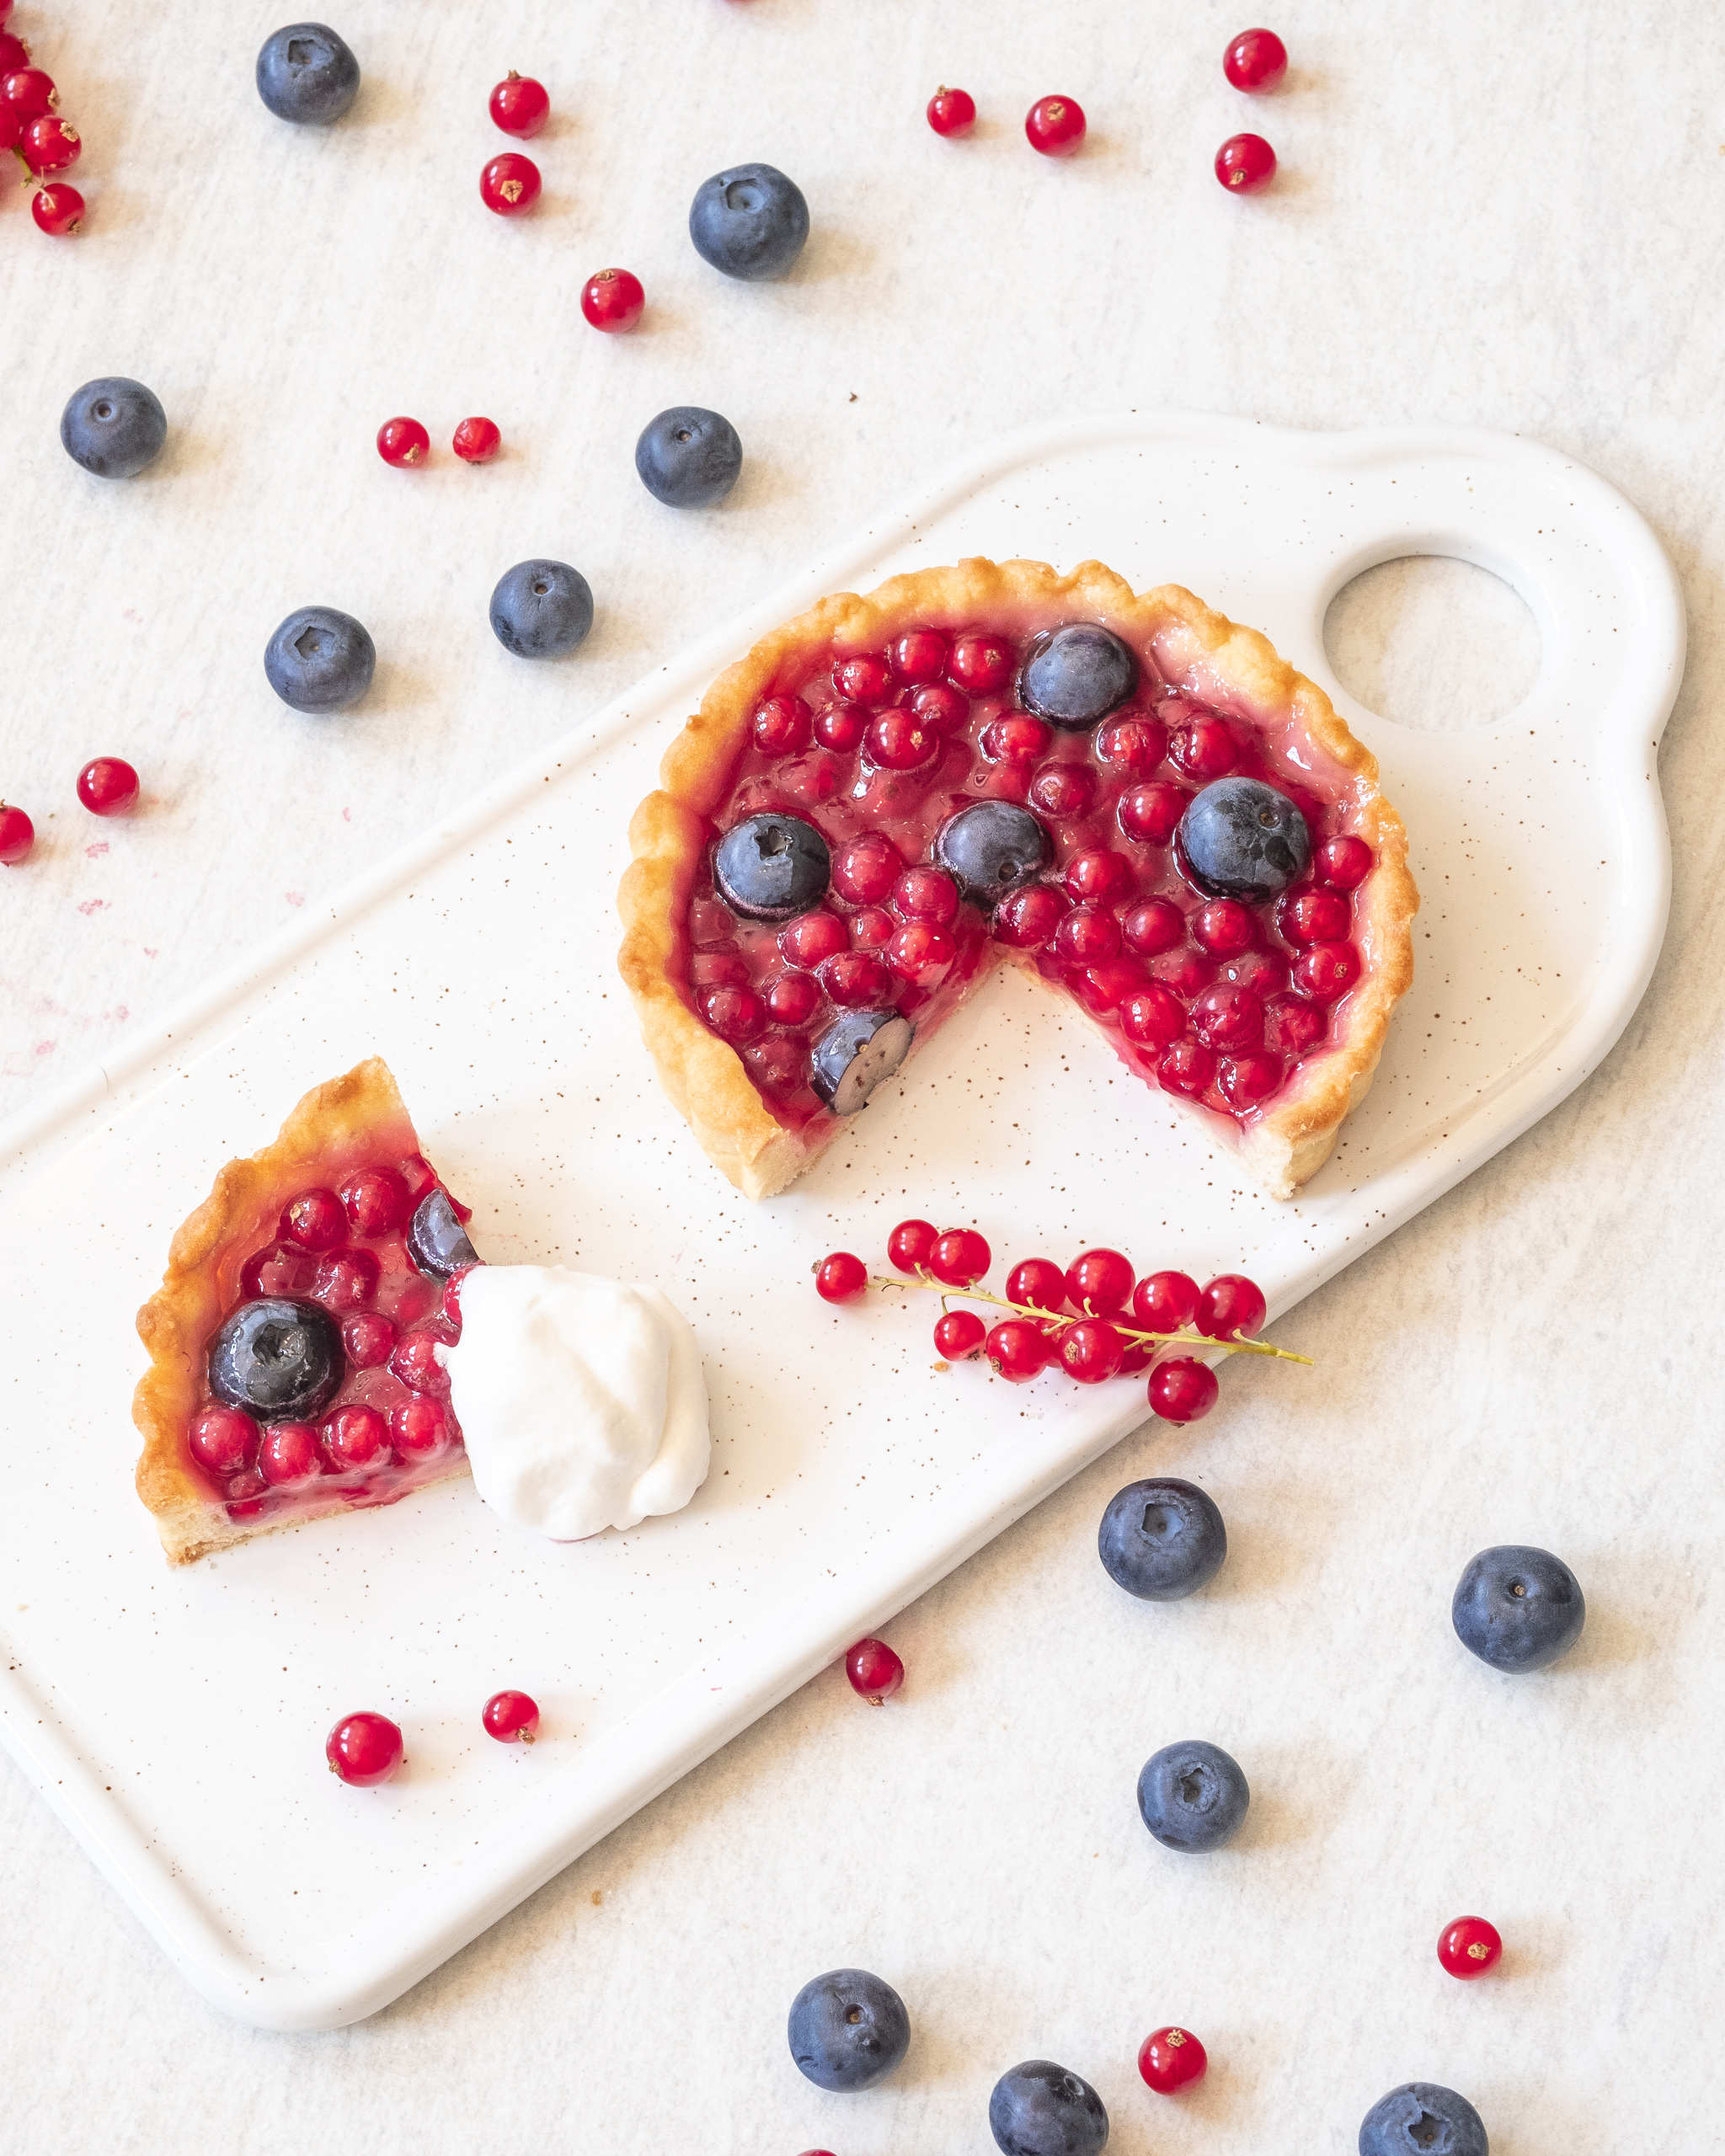 Vegan red currant pie